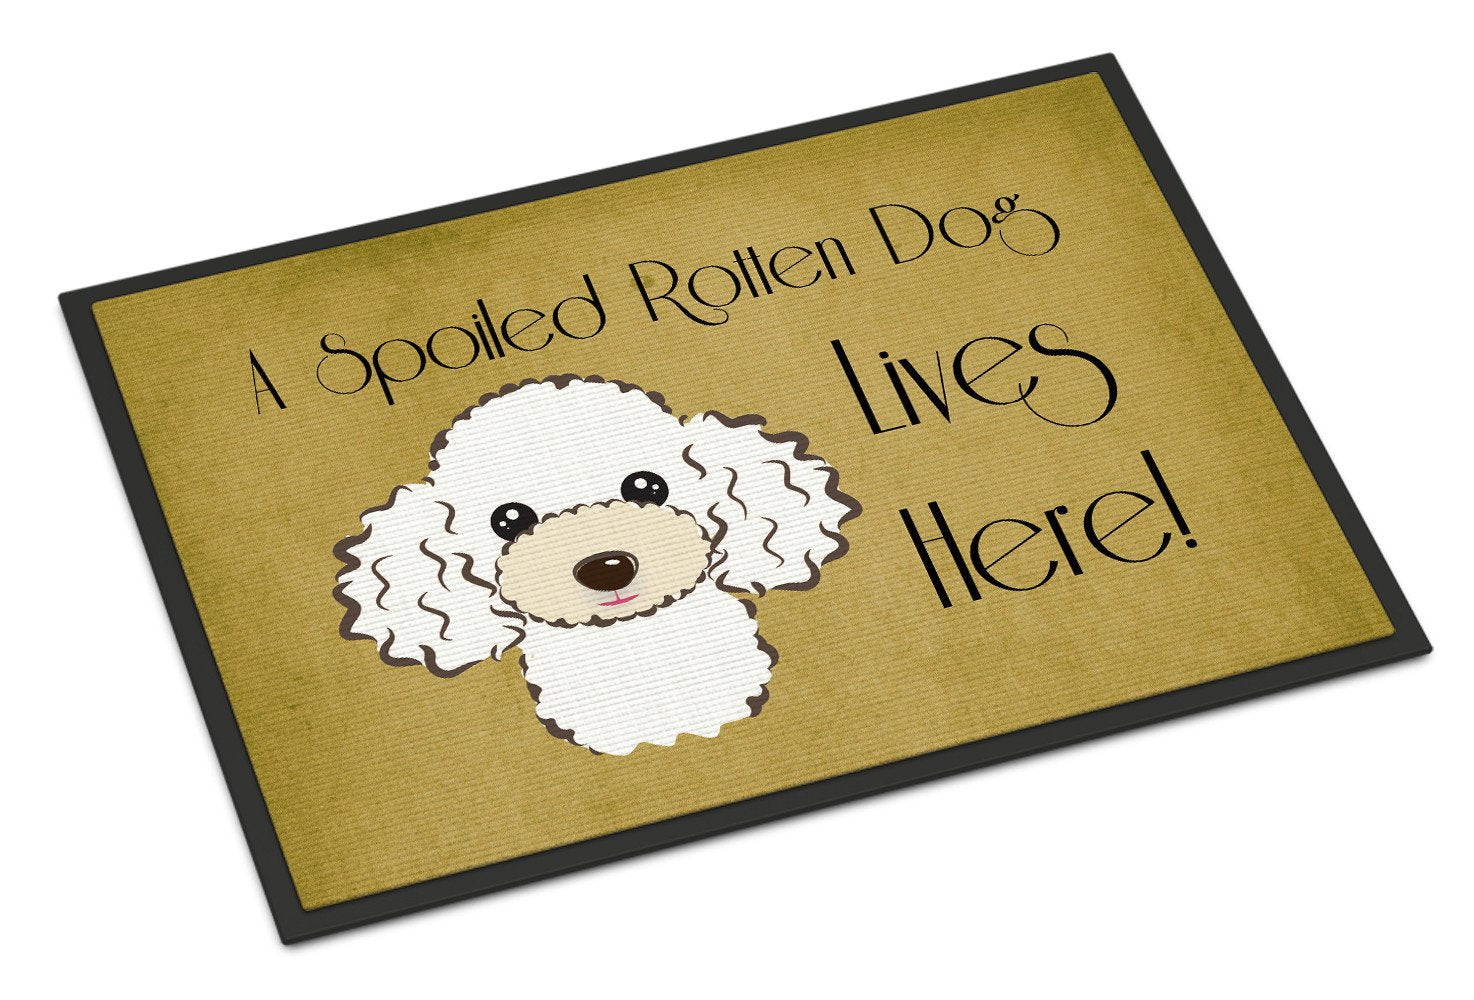 White Poodle Spoiled Dog Lives Here Indoor or Outdoor Mat 18x27 BB1505MAT - the-store.com